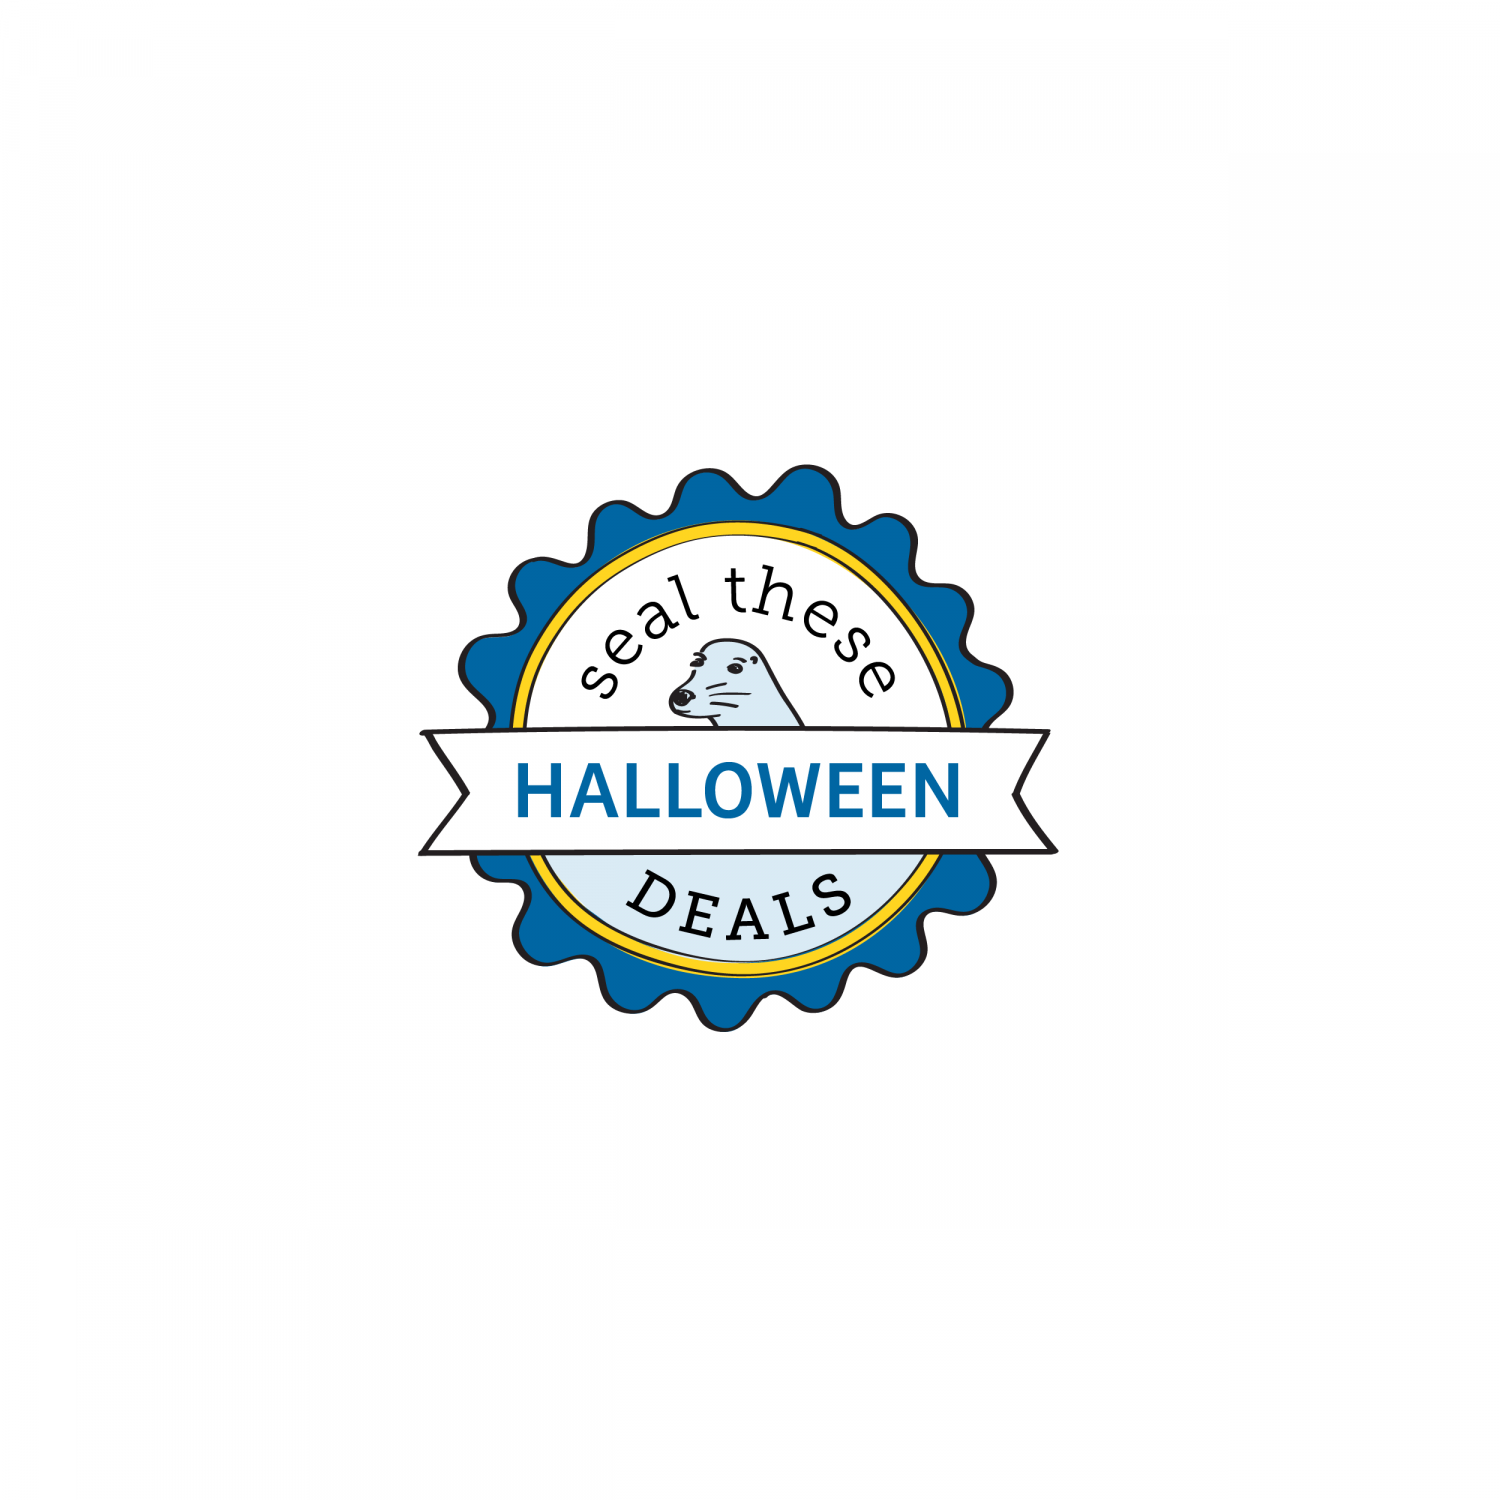 Seal These Deals: Halloween Part 1